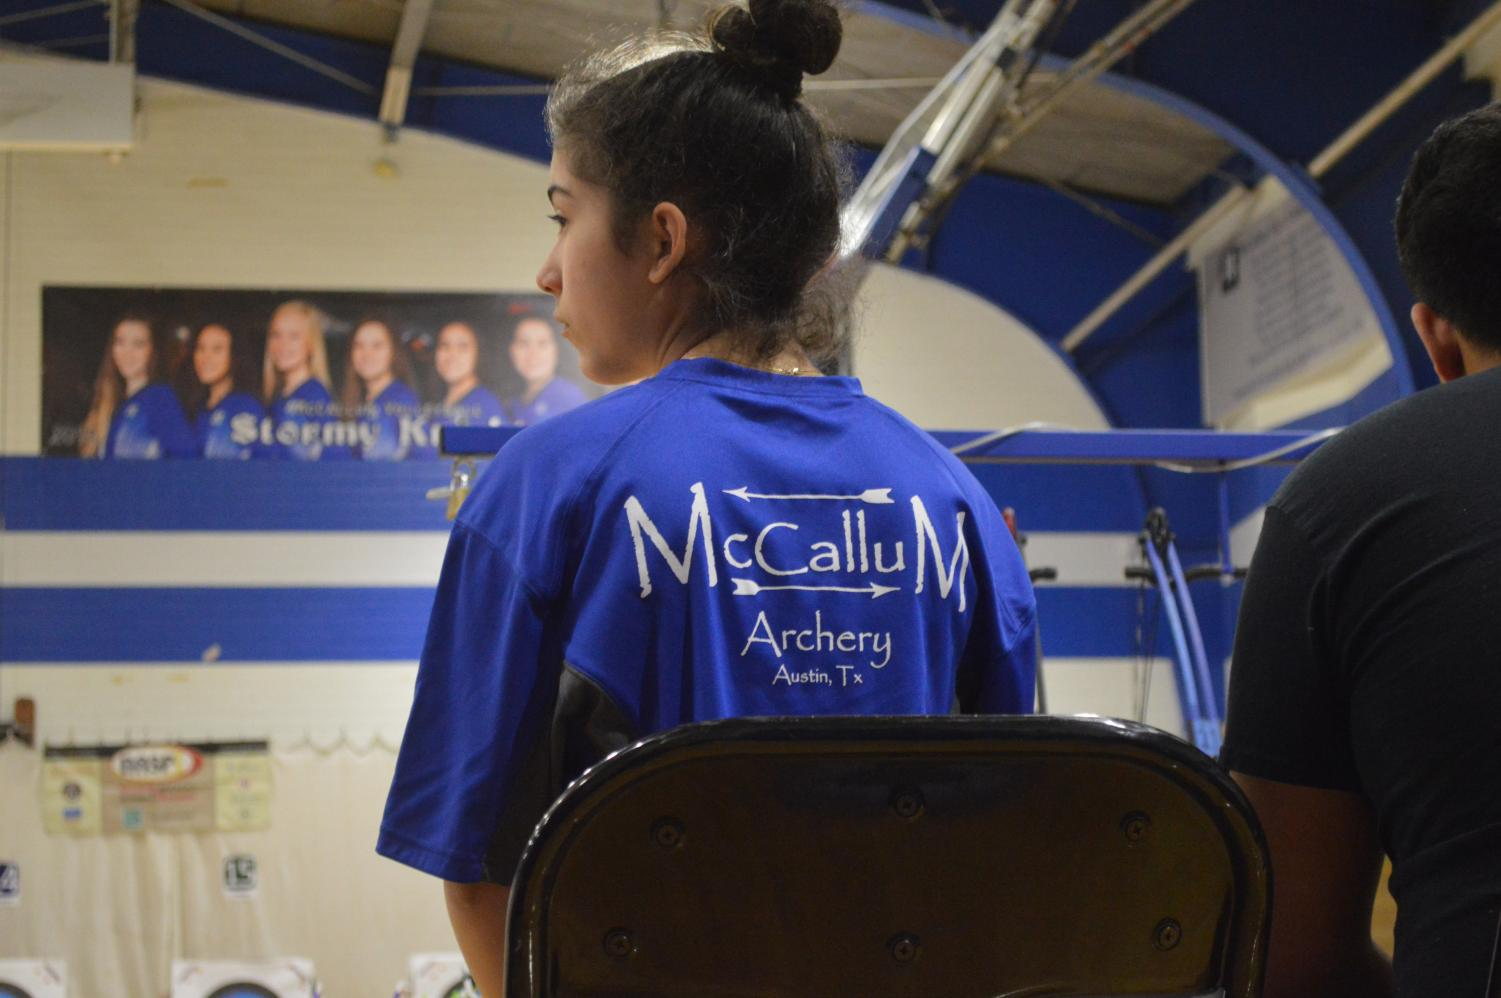 Sophomore Mariana Torres DeLine waits patiently in her seat as the whistle is ready to be blown for the 15-meters shots at McCallum on December 15th, 2018.